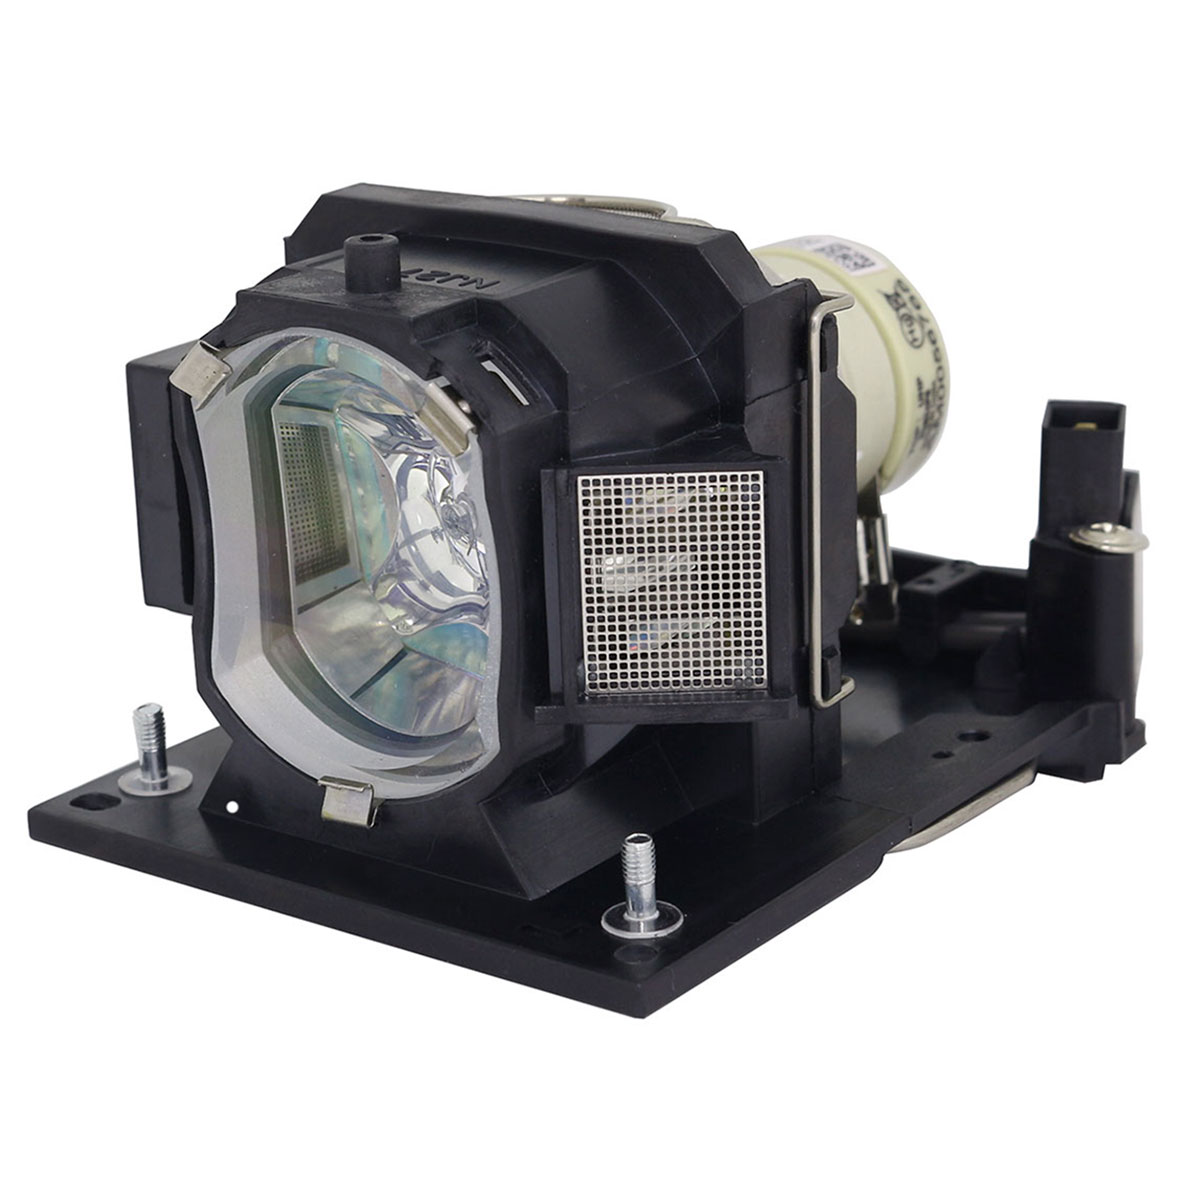 Lutema Platinum for Liesegang DV-485 Projector Lamp with Housing Original Philips Bulb Inside